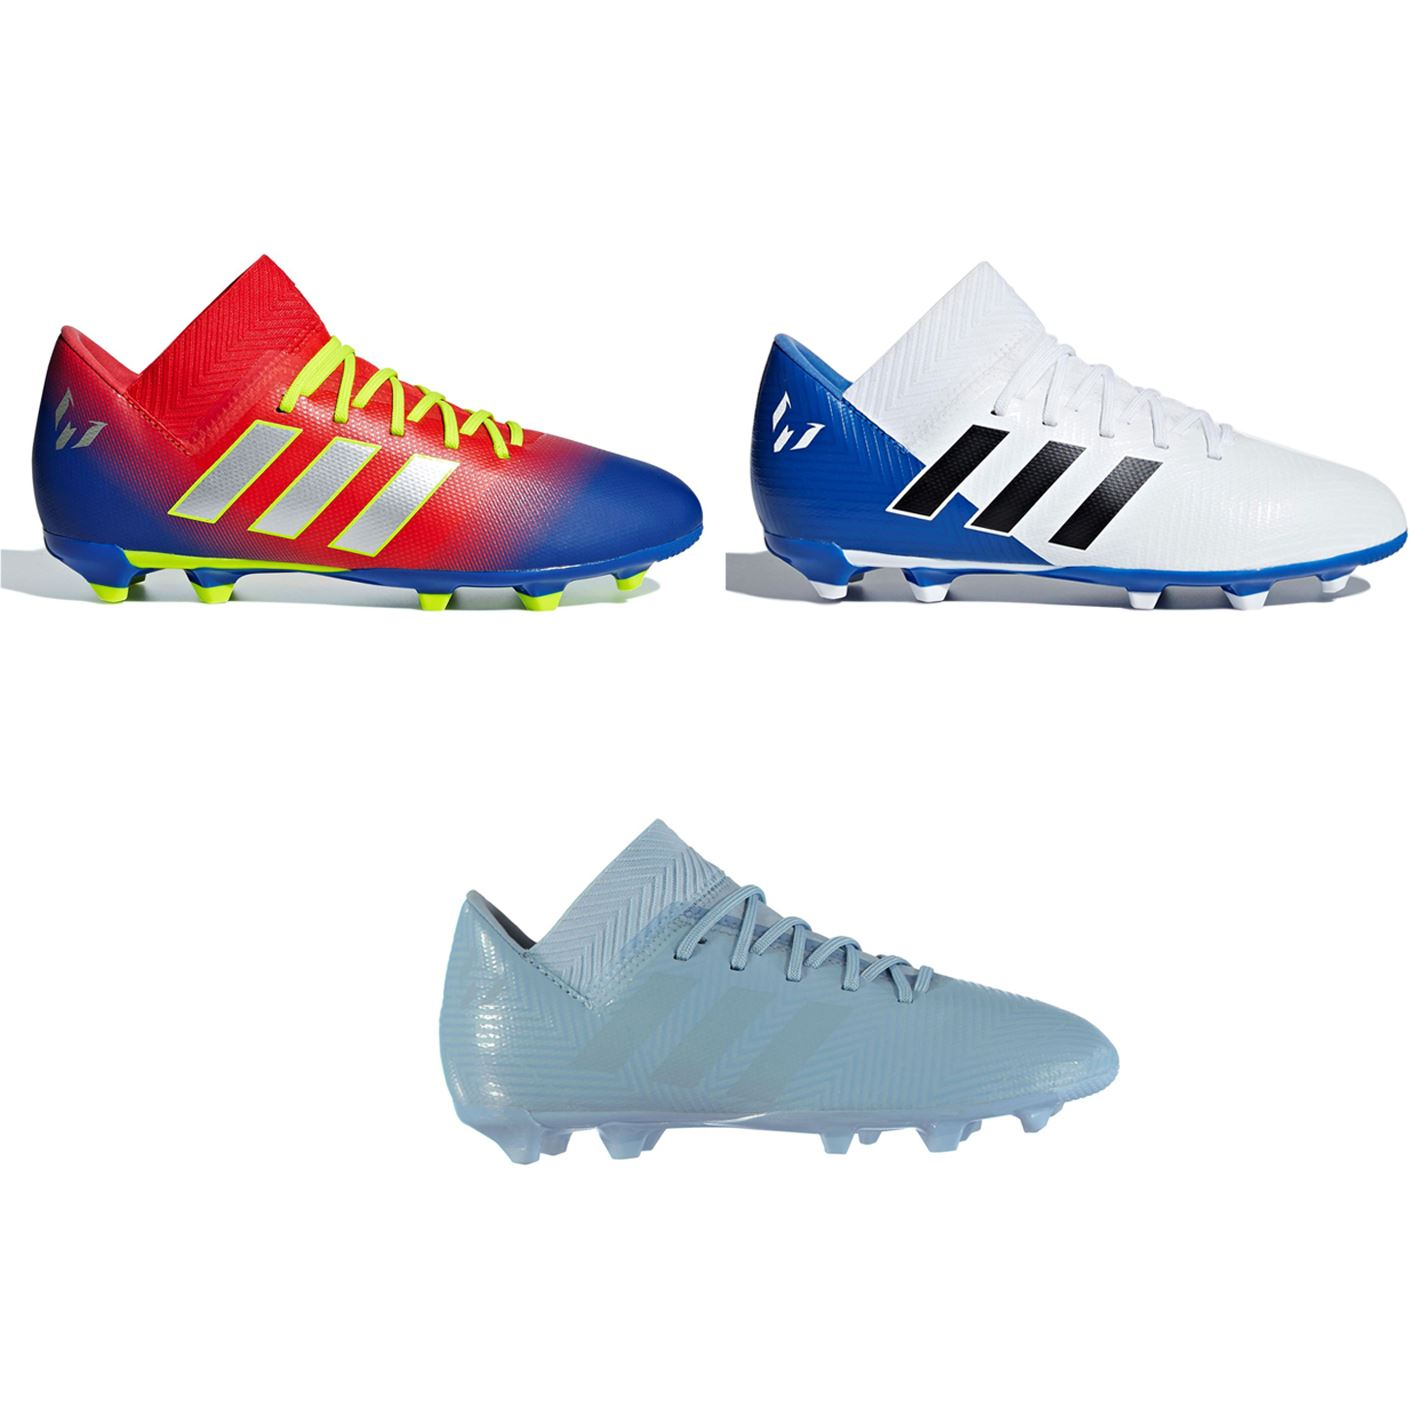 18191dbc9f08 ... adidas Nemeziz Messi 18.3 FG Firm Ground Football Boots Childs Soccer  Cleats ...